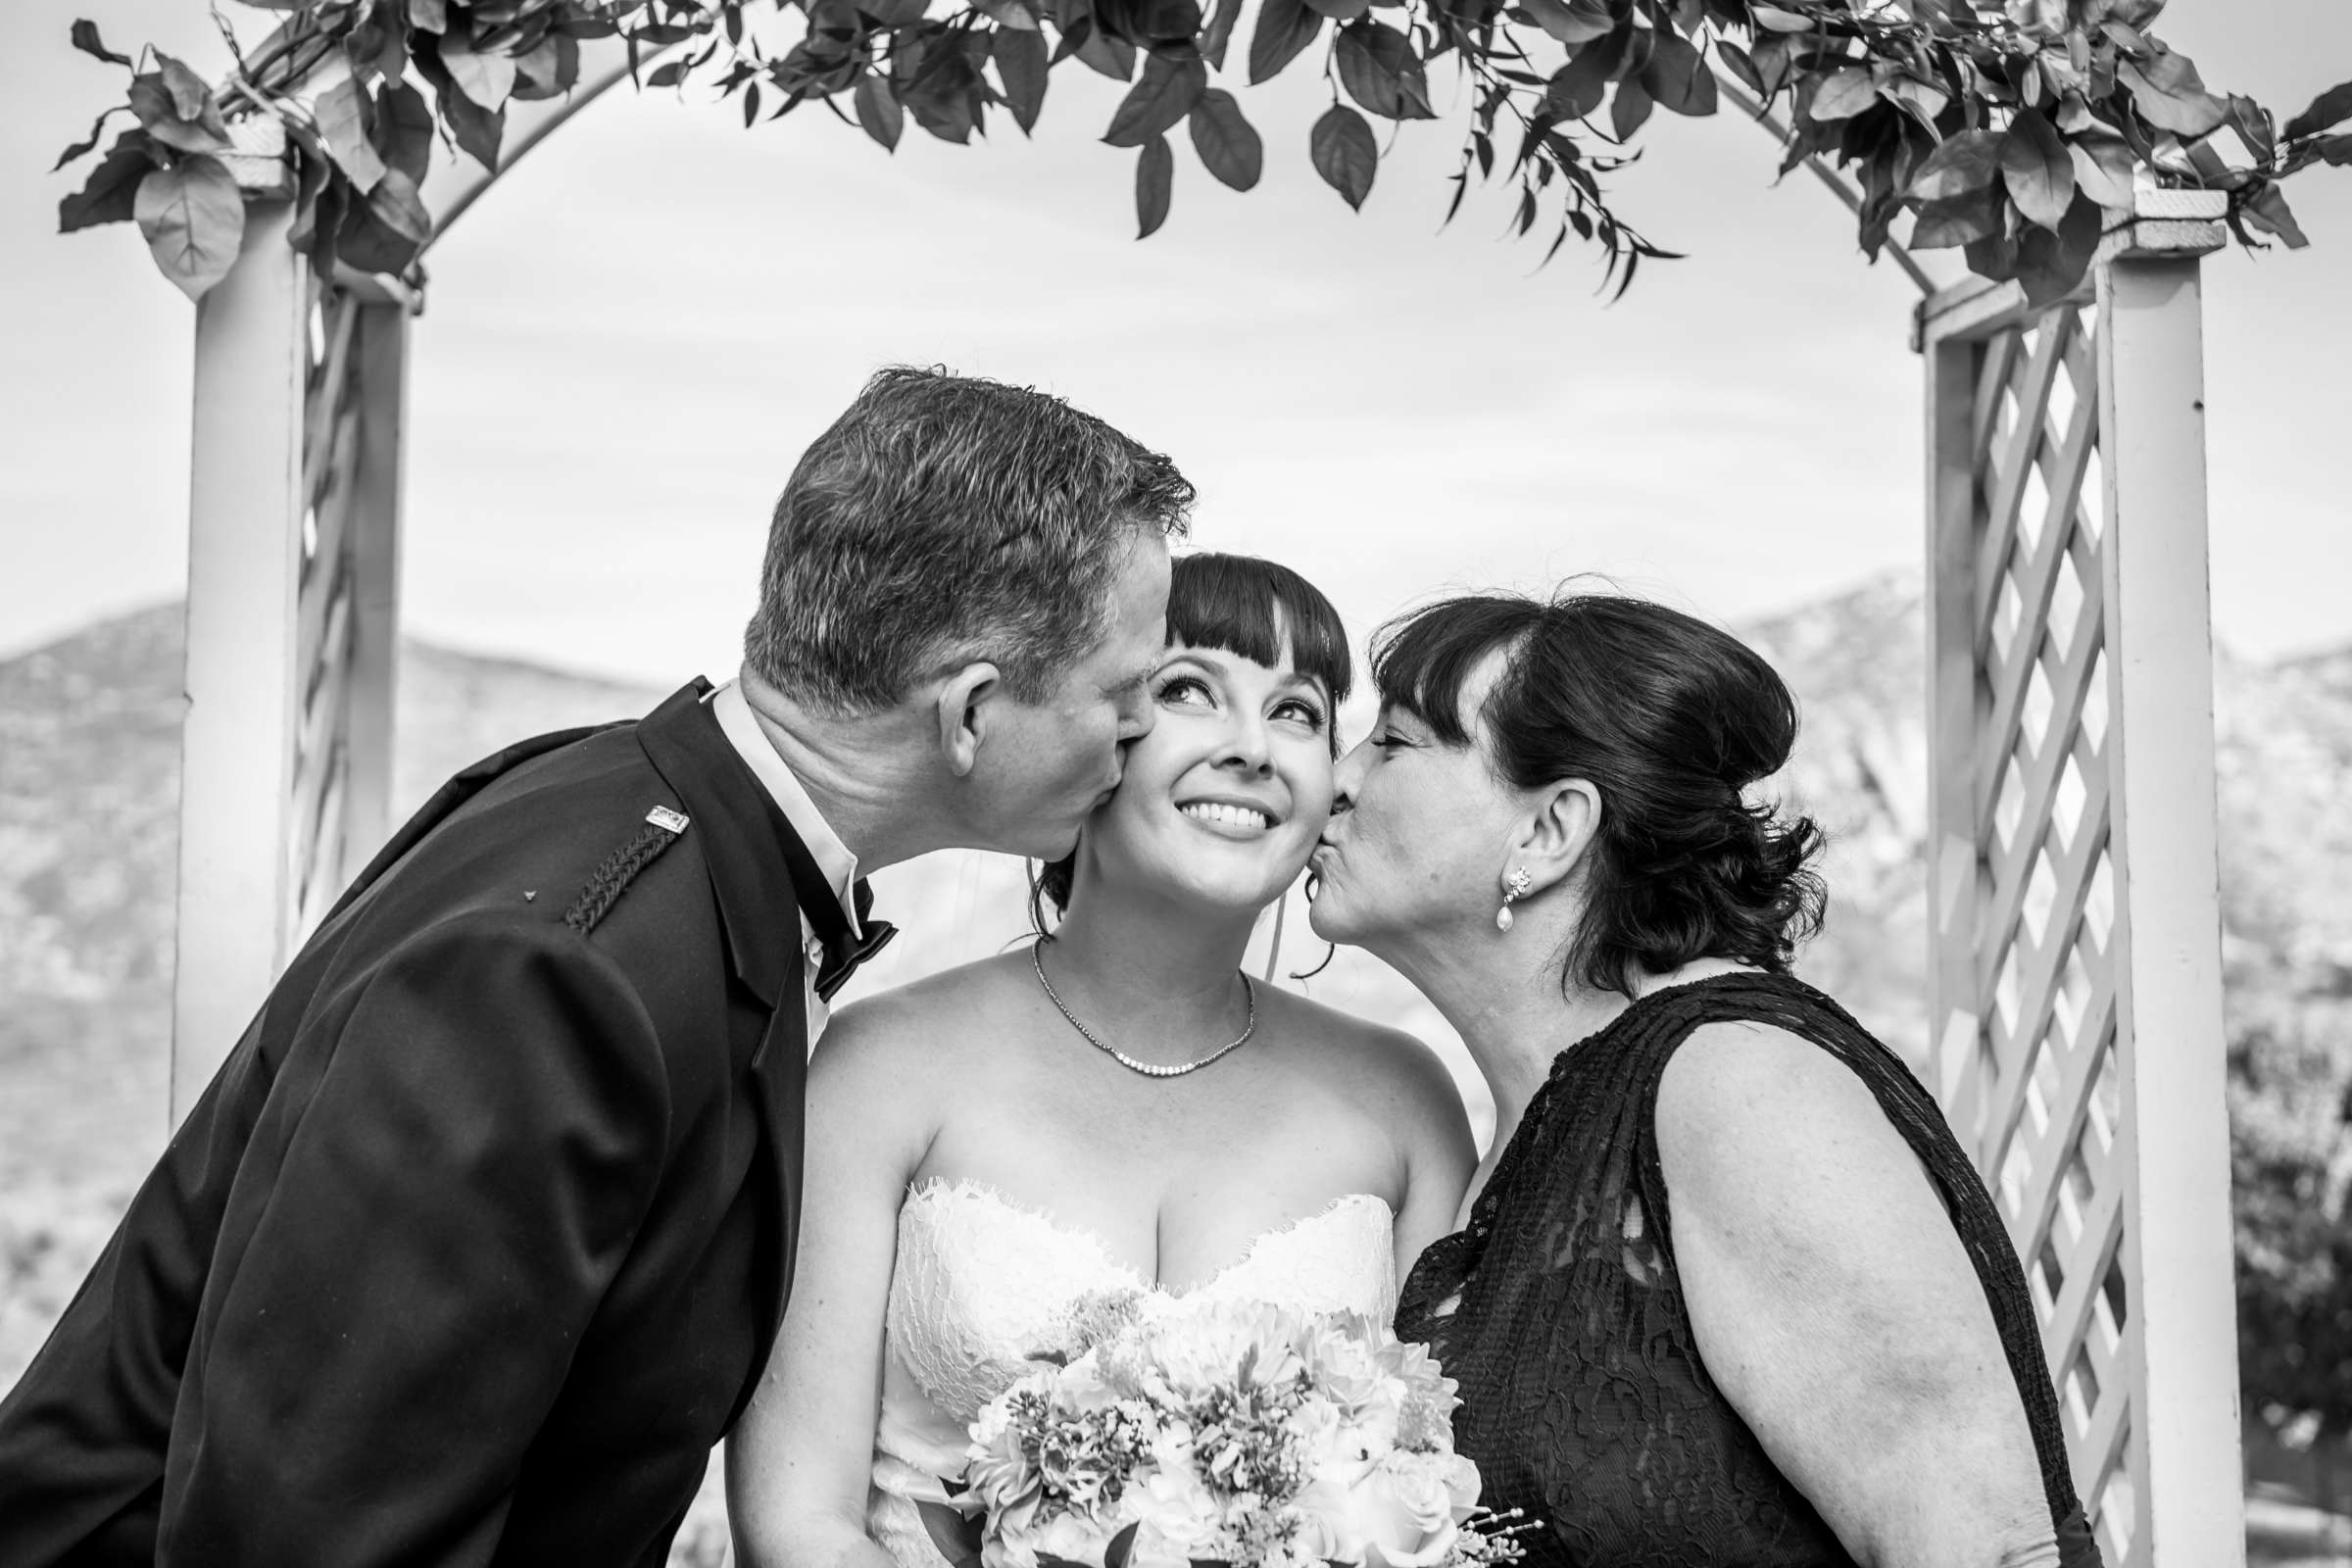 Orfila Vineyards Wedding, Tulasi and Richard Wedding Photo #33 by True Photography